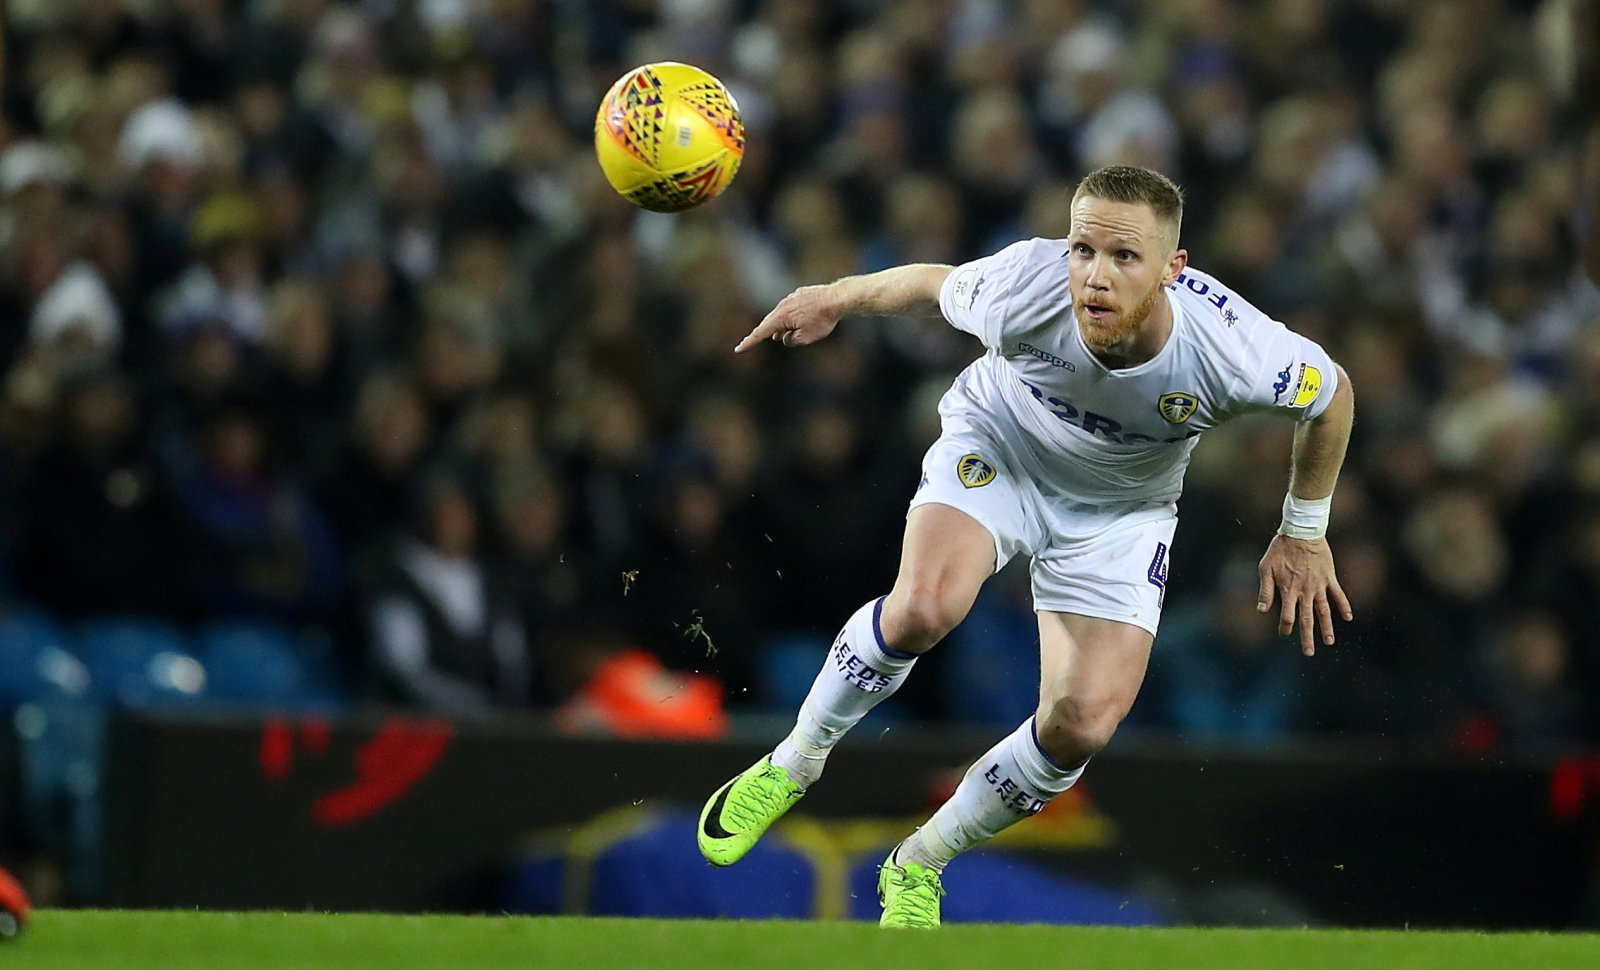 Leeds United: Fans react to Adam Forshaw's comments about season so far